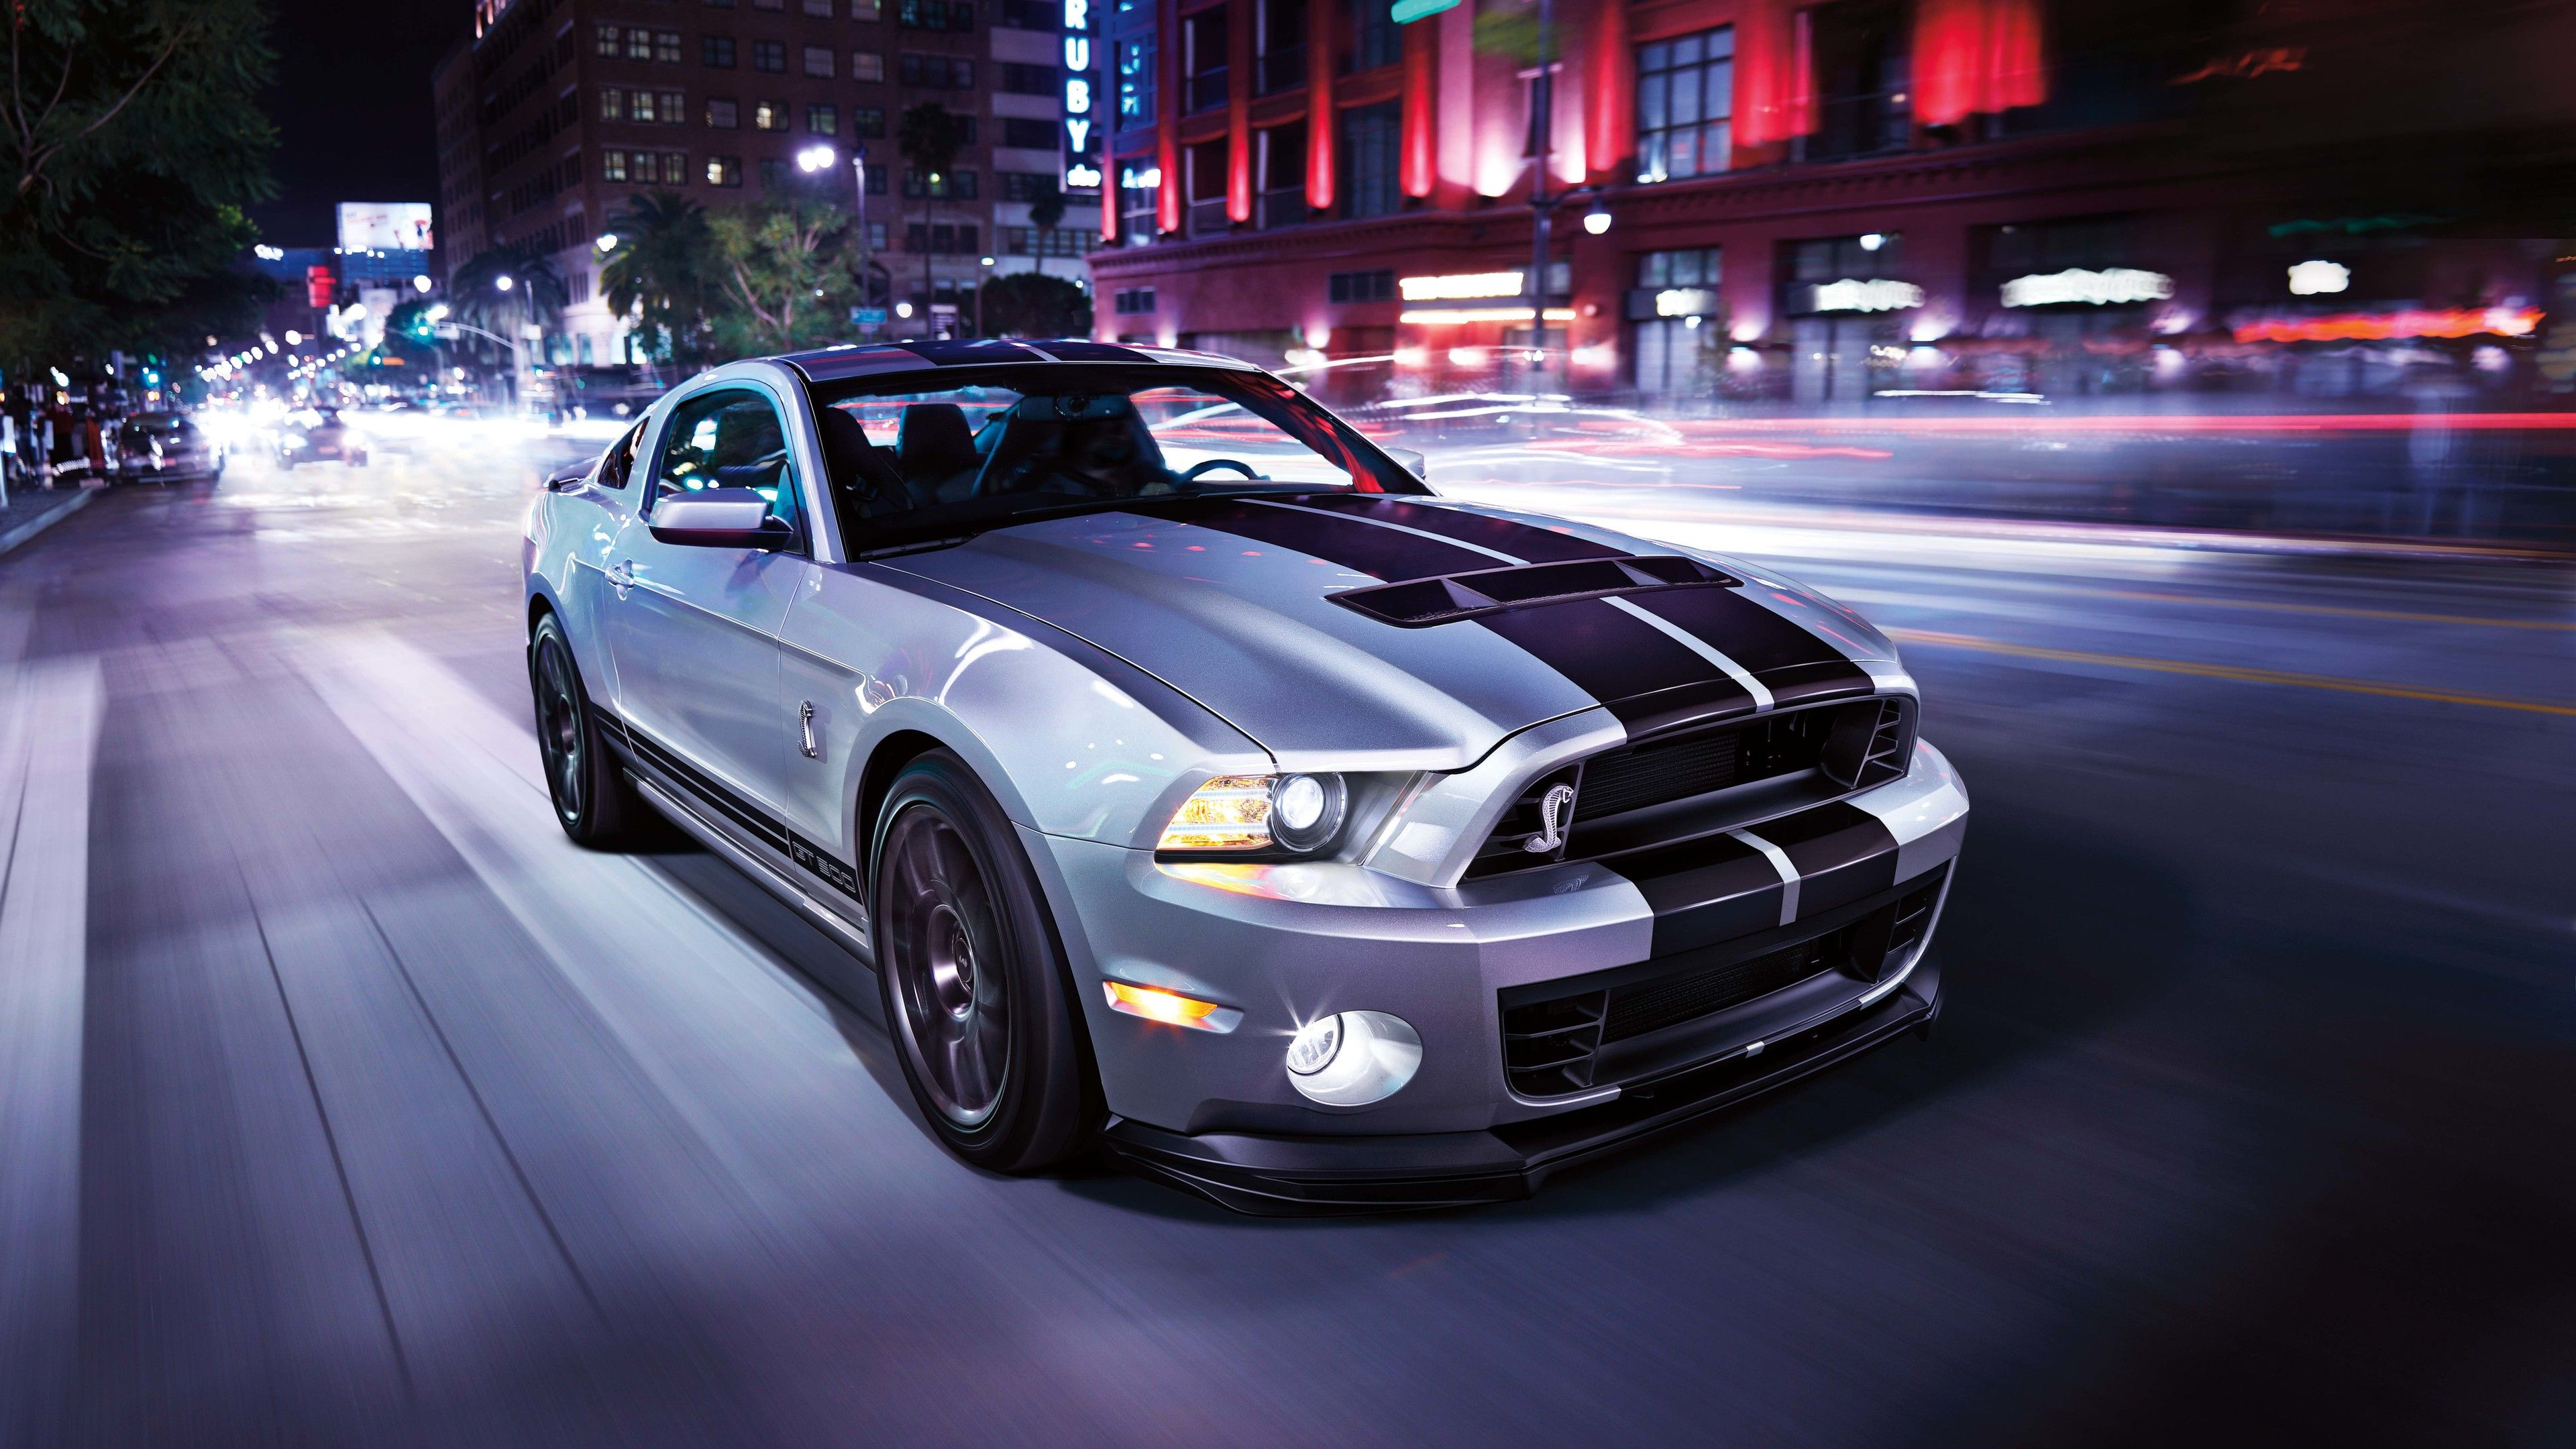 Ford Shelby 4k Shelby Wallpapers Hd Wallpapers Cars Wallpapers